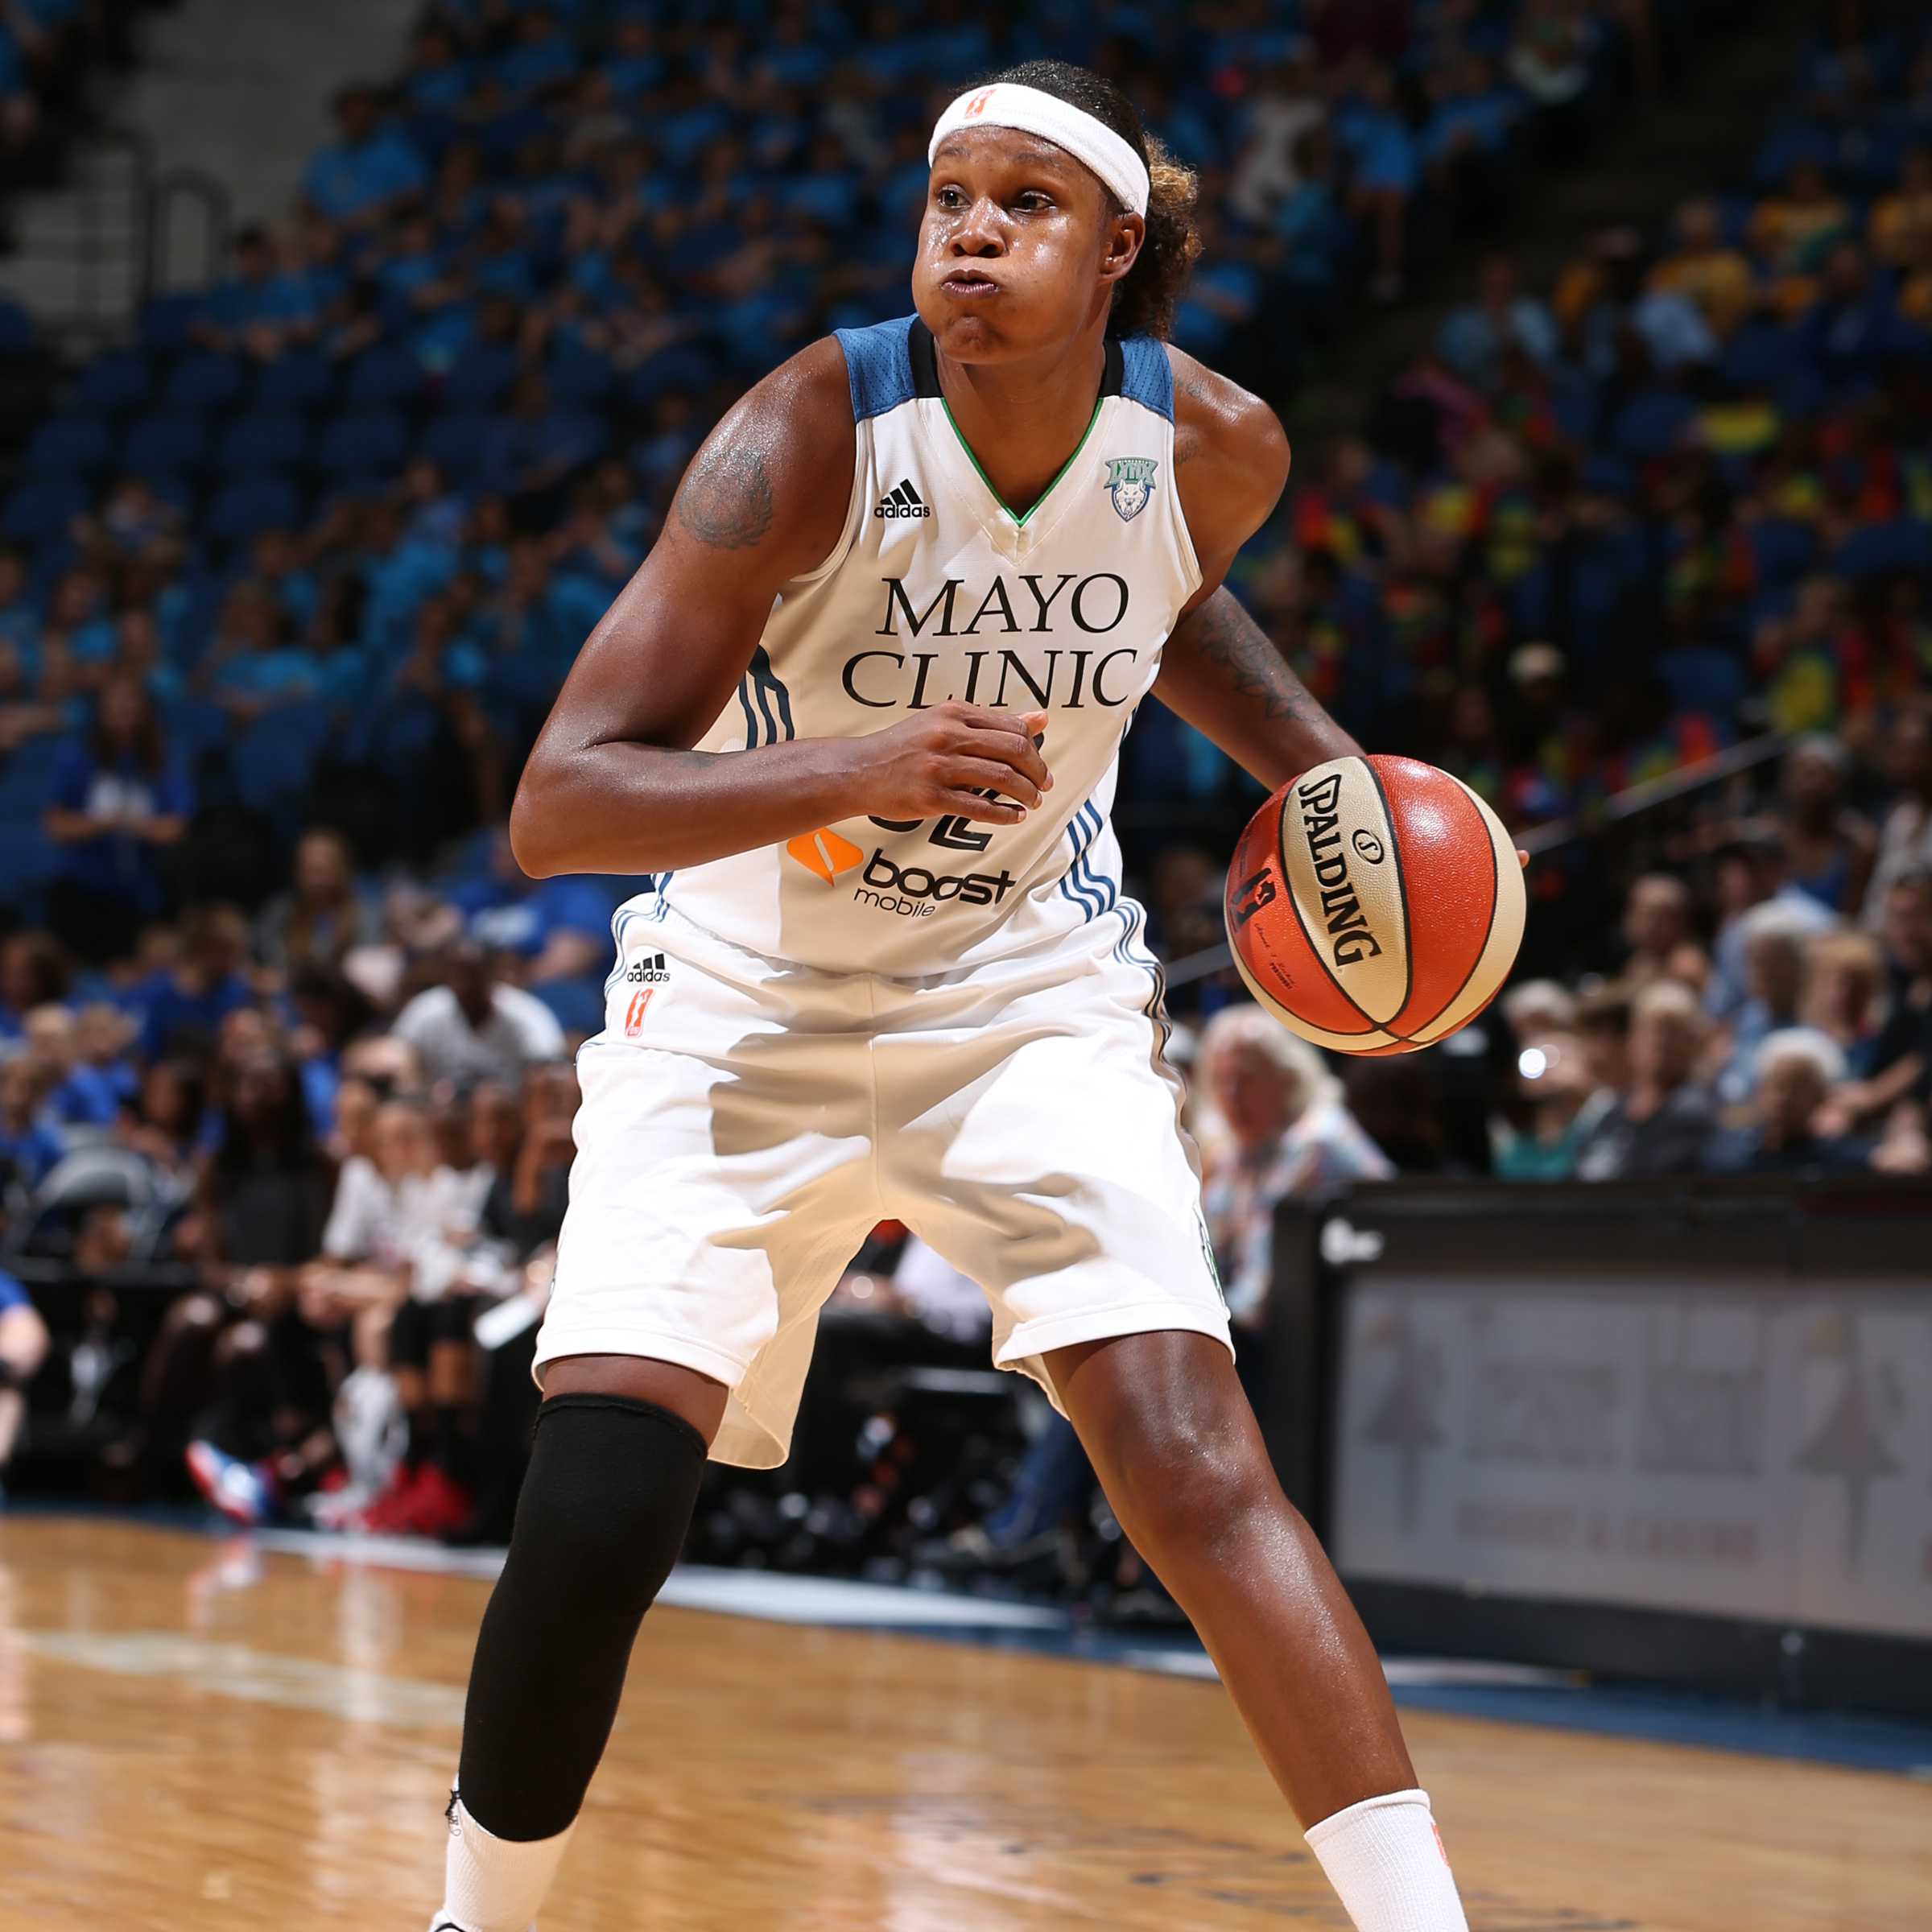 MINNEAPOLIS, MN - JULY 22: Rebekkah Brunson #32 of the Minnesota Lynx handles the ball against the Connecticut Sun on July 22, 2015 at Target Center in Minneapolis, Minnesota. NOTE TO USER: User expressly acknowledges and agrees that, by downloading and or using this Photograph, user is consenting to the terms and conditions of the Getty Images License Agreement. Mandatory Copyright Notice: Copyright 2015 NBAE (Photo by David Sherman/NBAE via Getty Images)